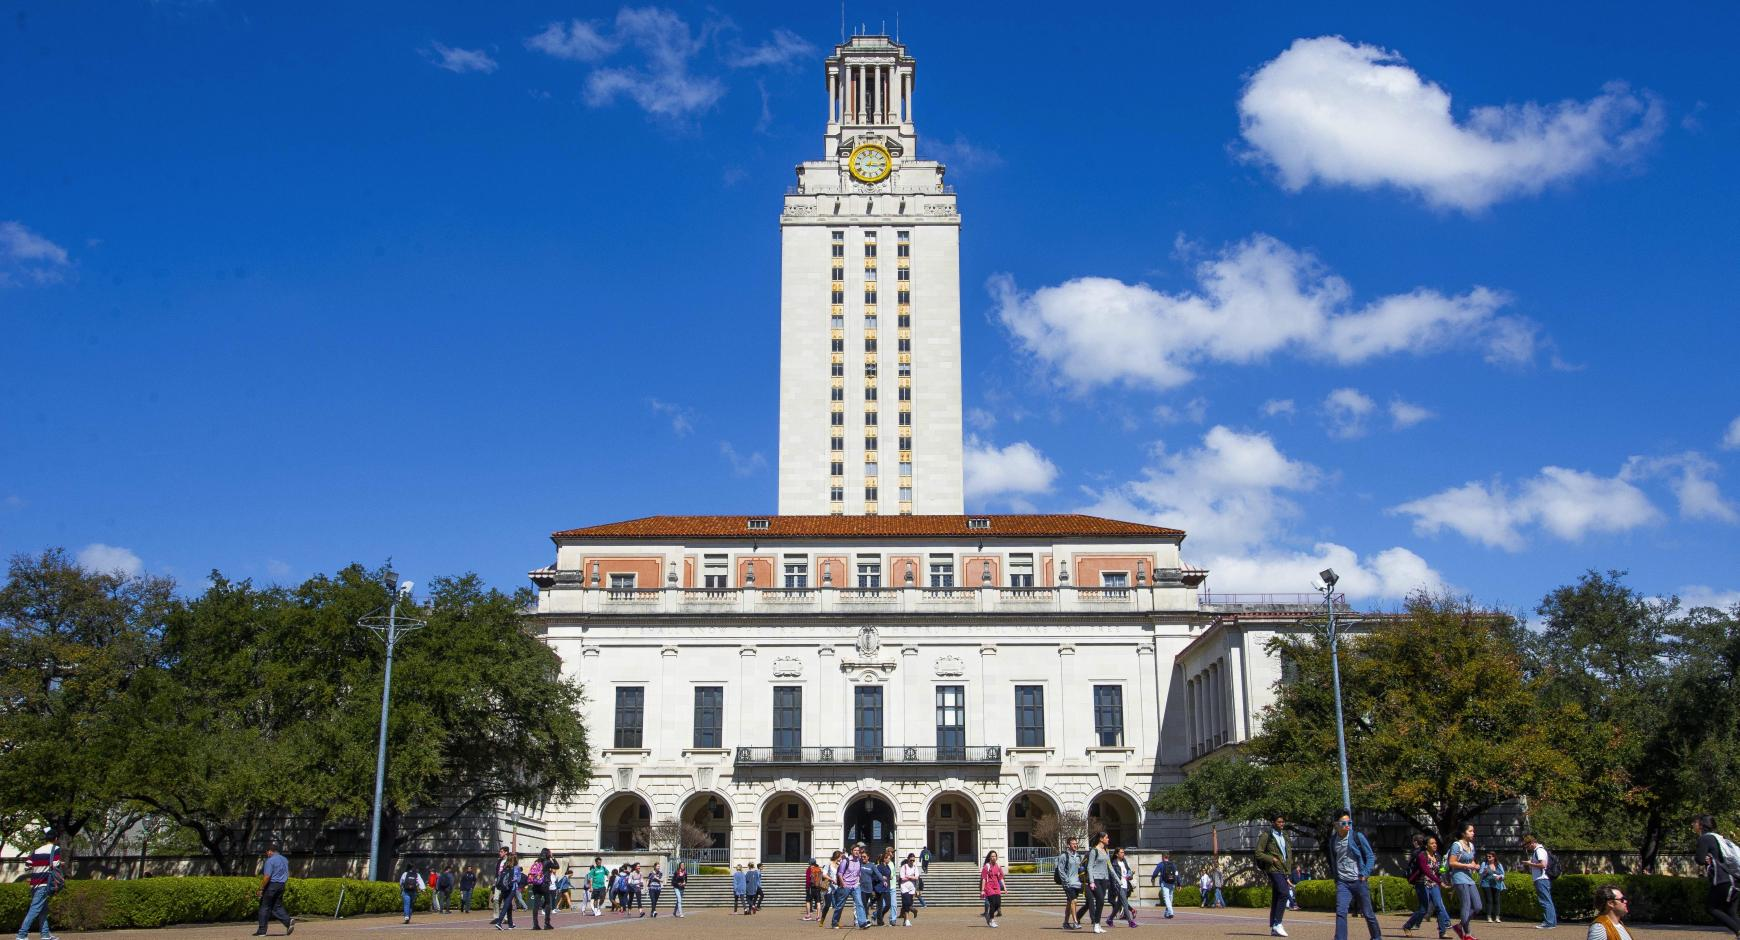 university of texas at austin thesis Phel application requirements master's thesis admission of students to the university of texas at austin with an upper division gpa below 30 is by.